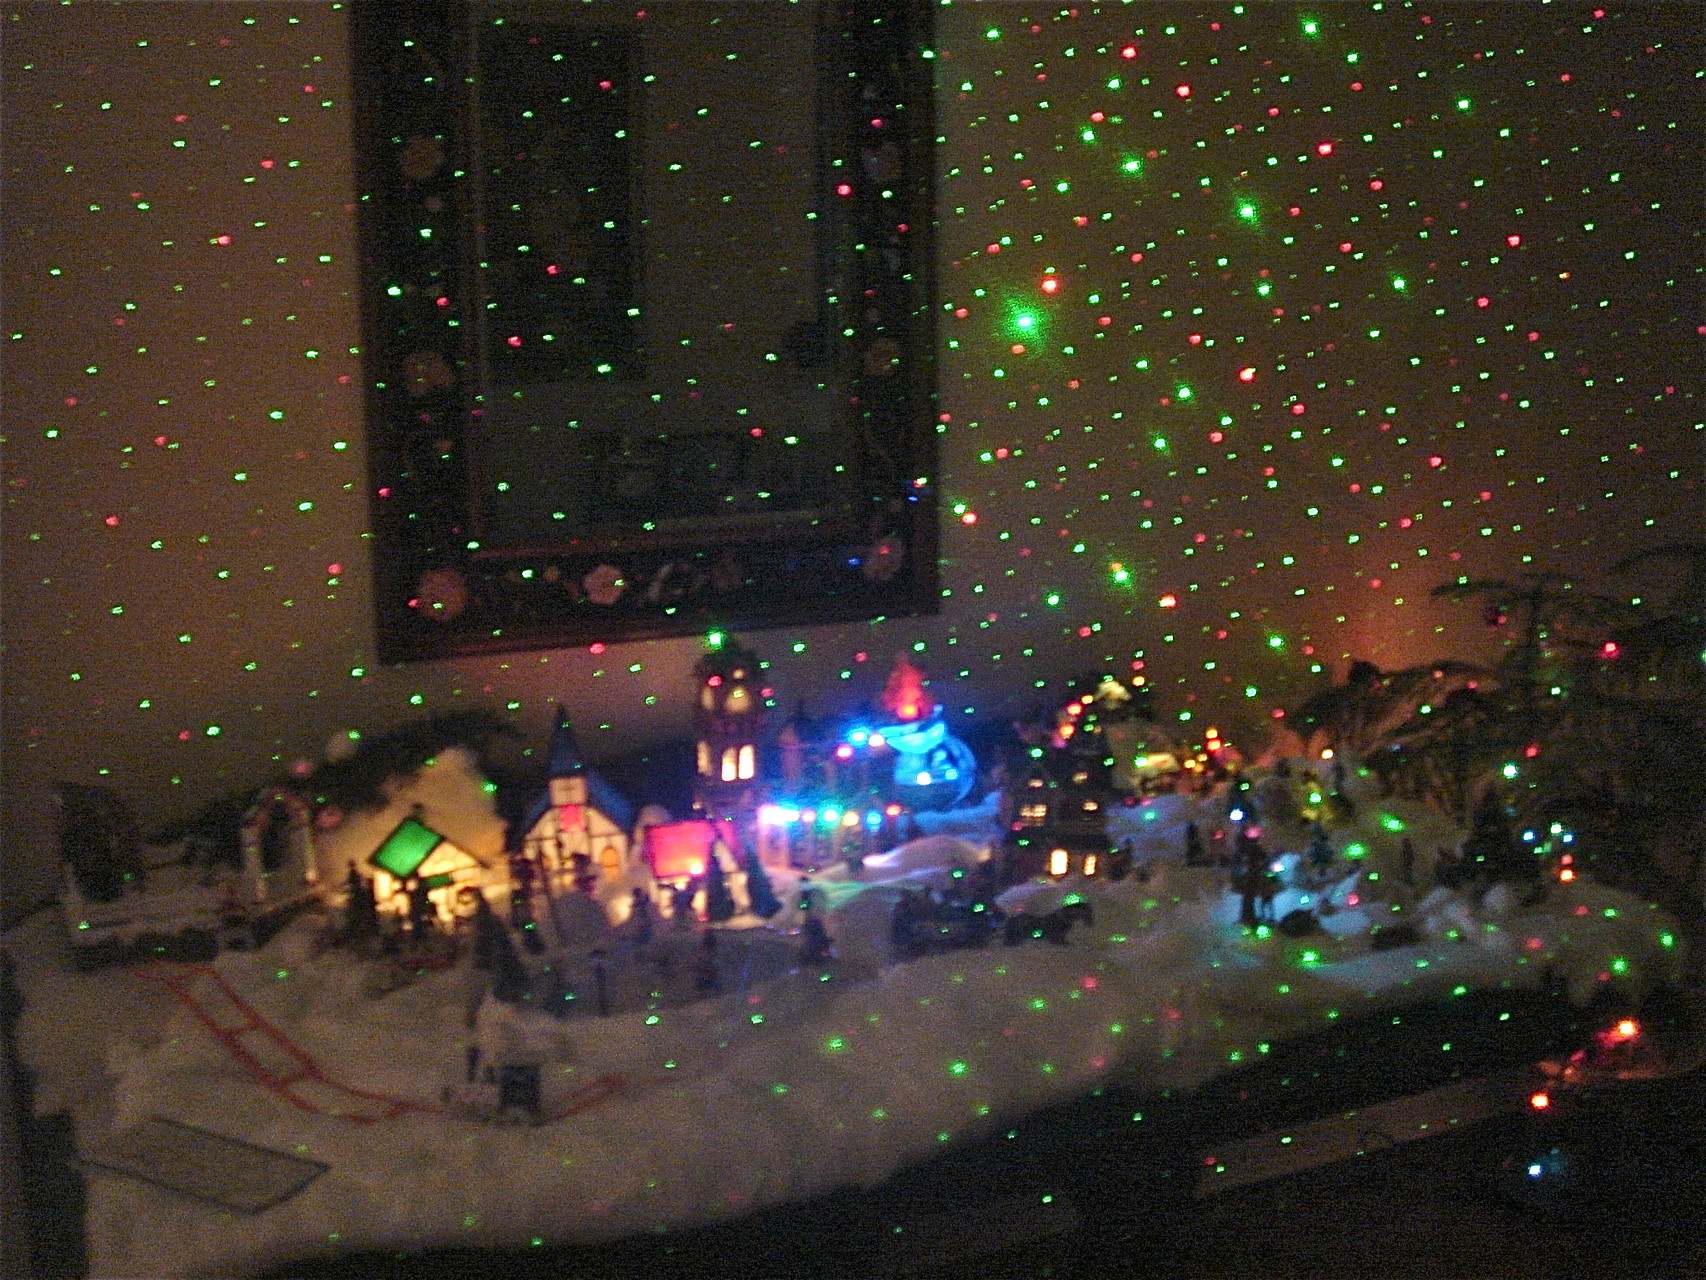 Xmas Village with State Fair Laser light